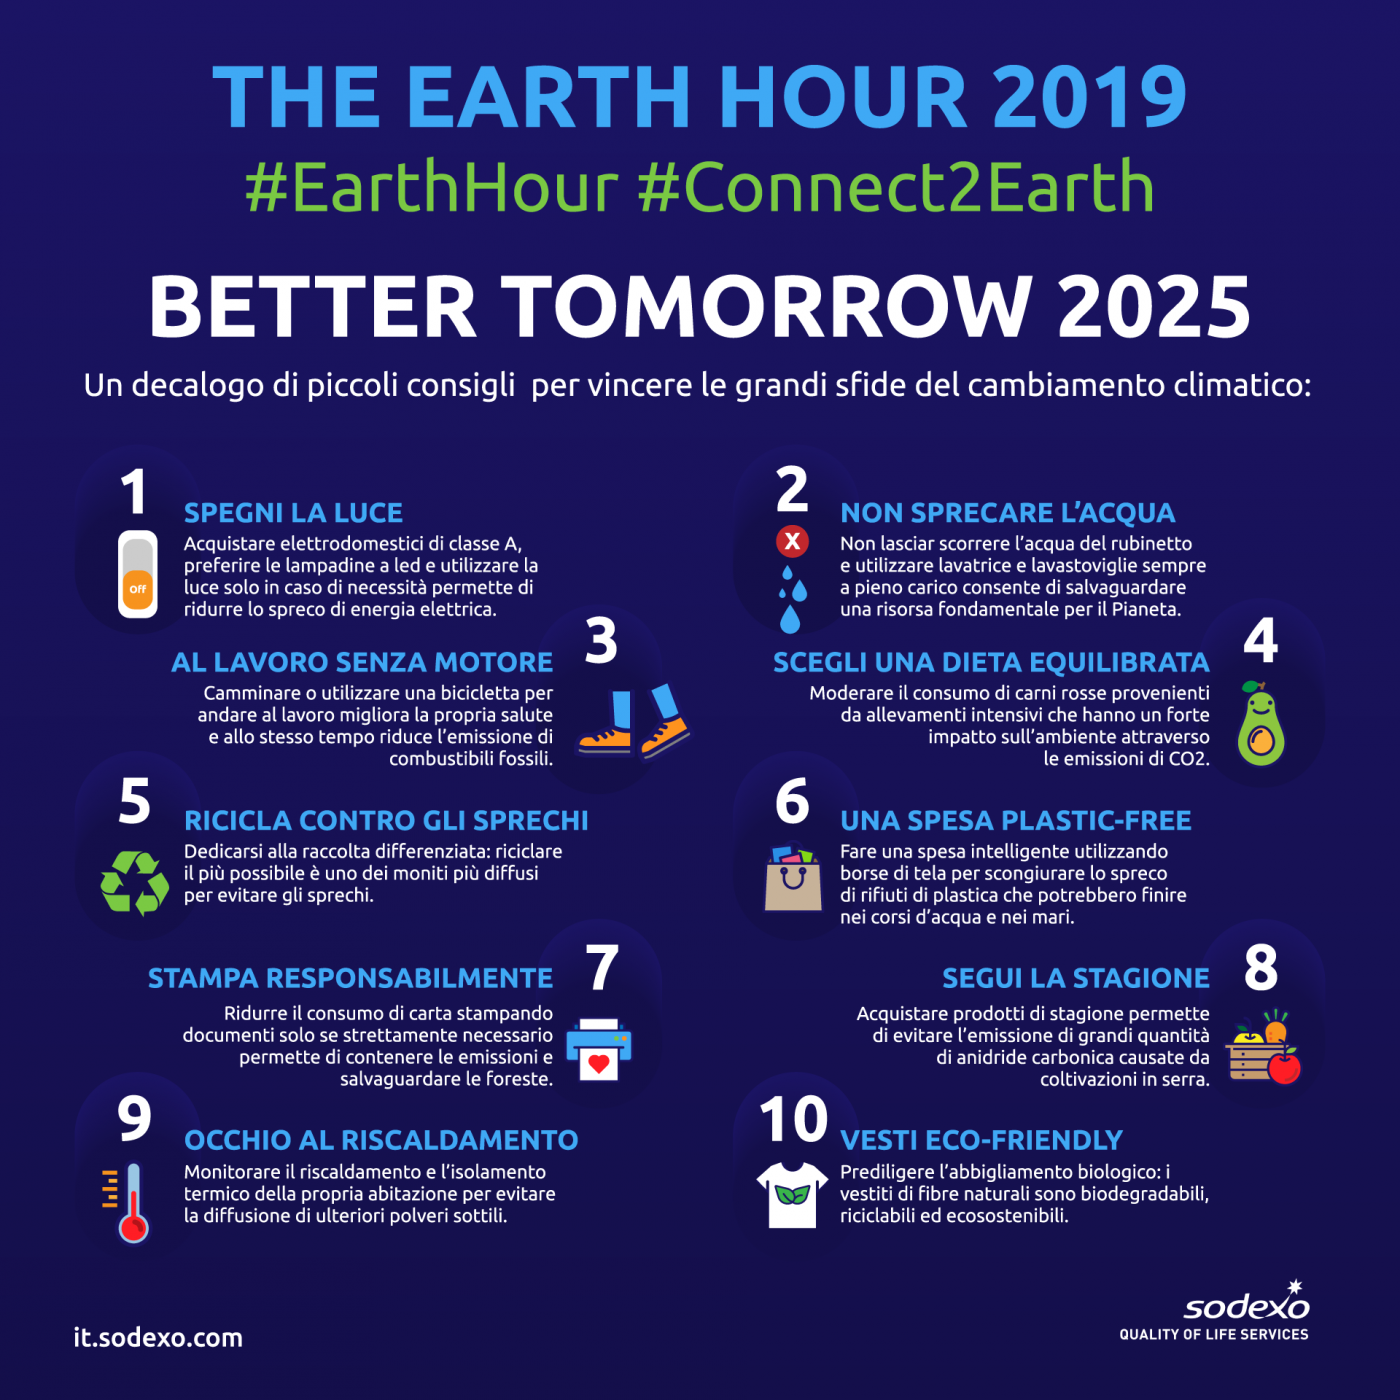 Earth Hour 2019 - Decalogo per l'ambiente